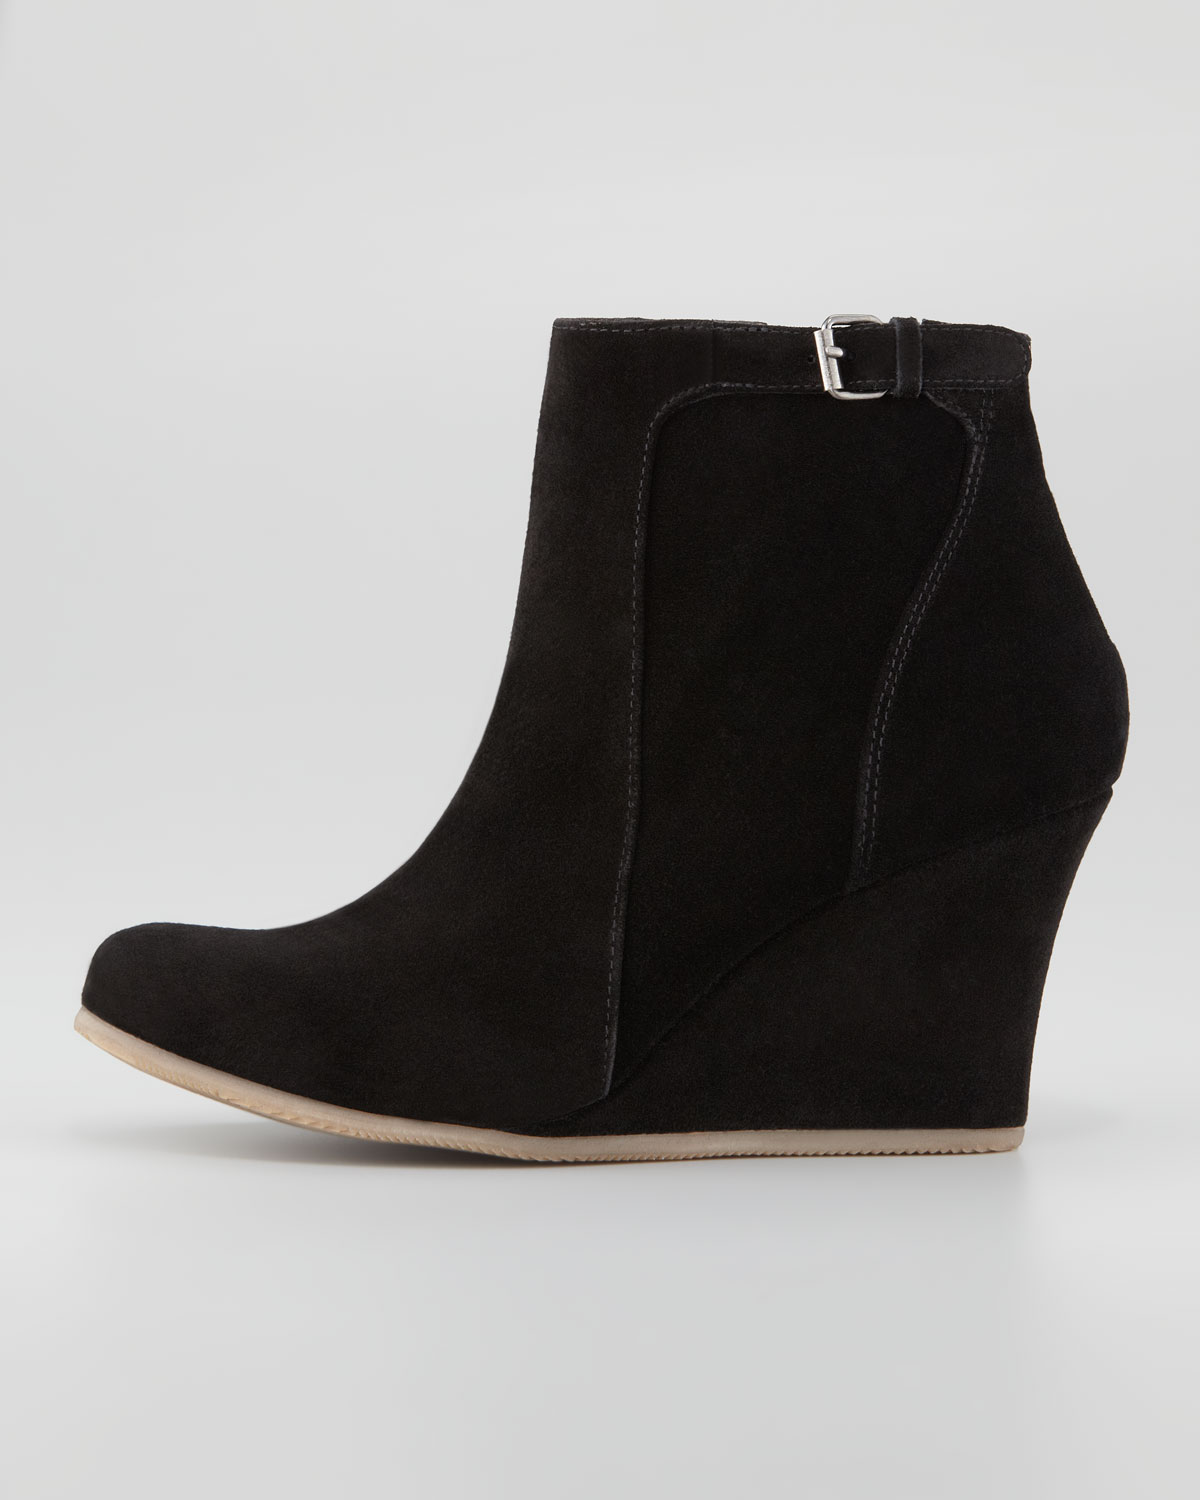 lanvin suede wedge ankle boot black in black lyst